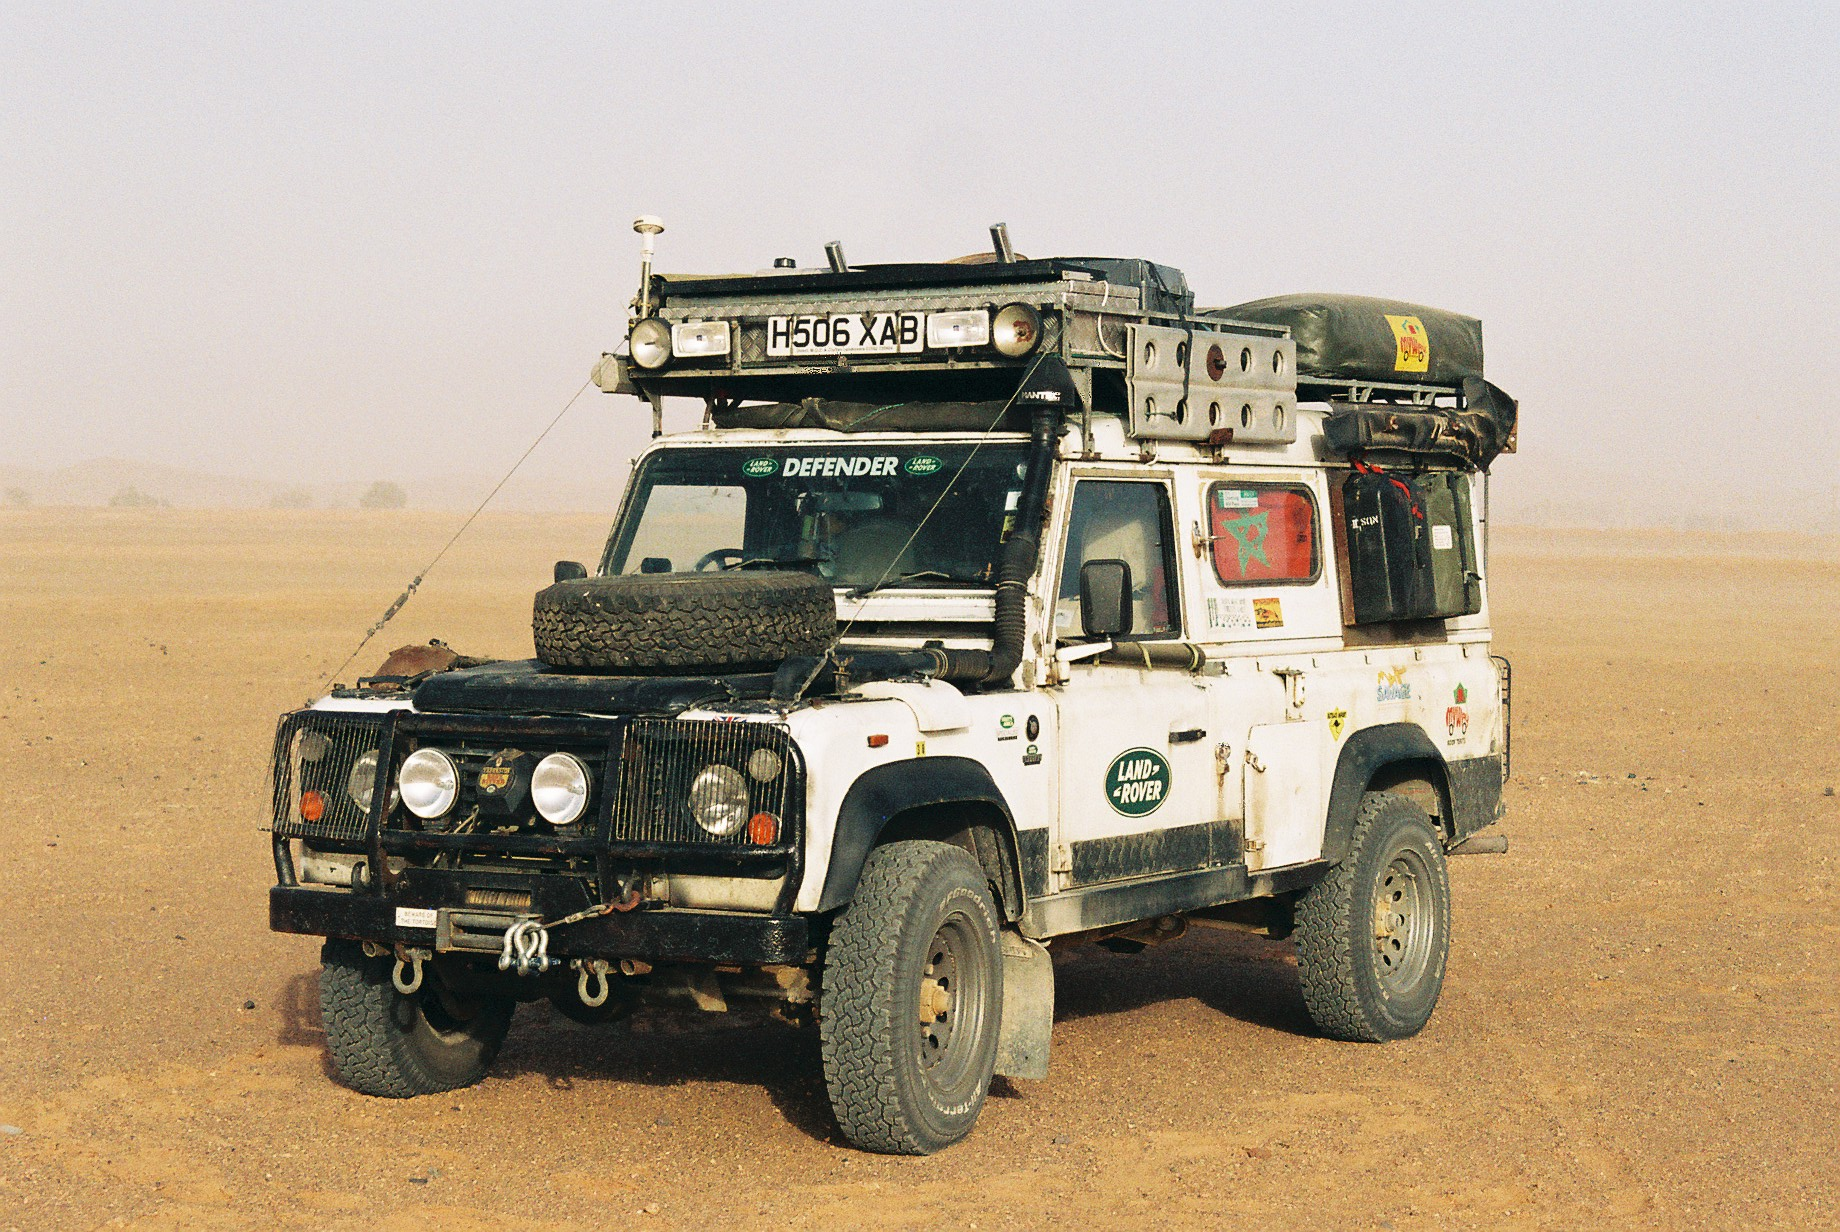 The Last Land Rover Defender – Expedition Portal